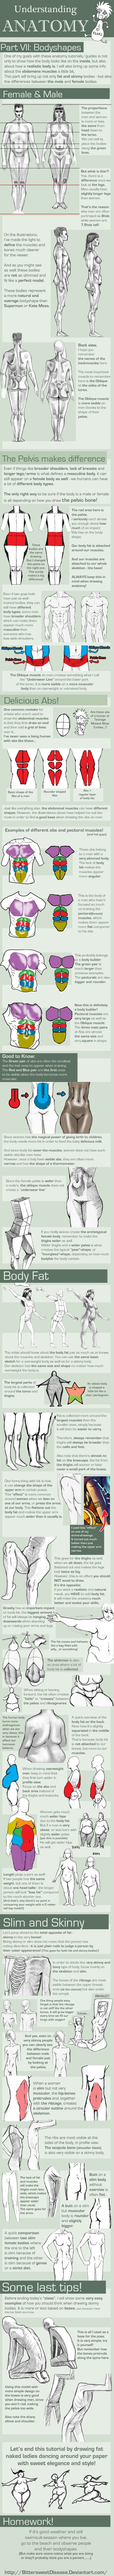 Understanding the Anatomy - Body Shapes | Drawing References and Resources | Scoop.it